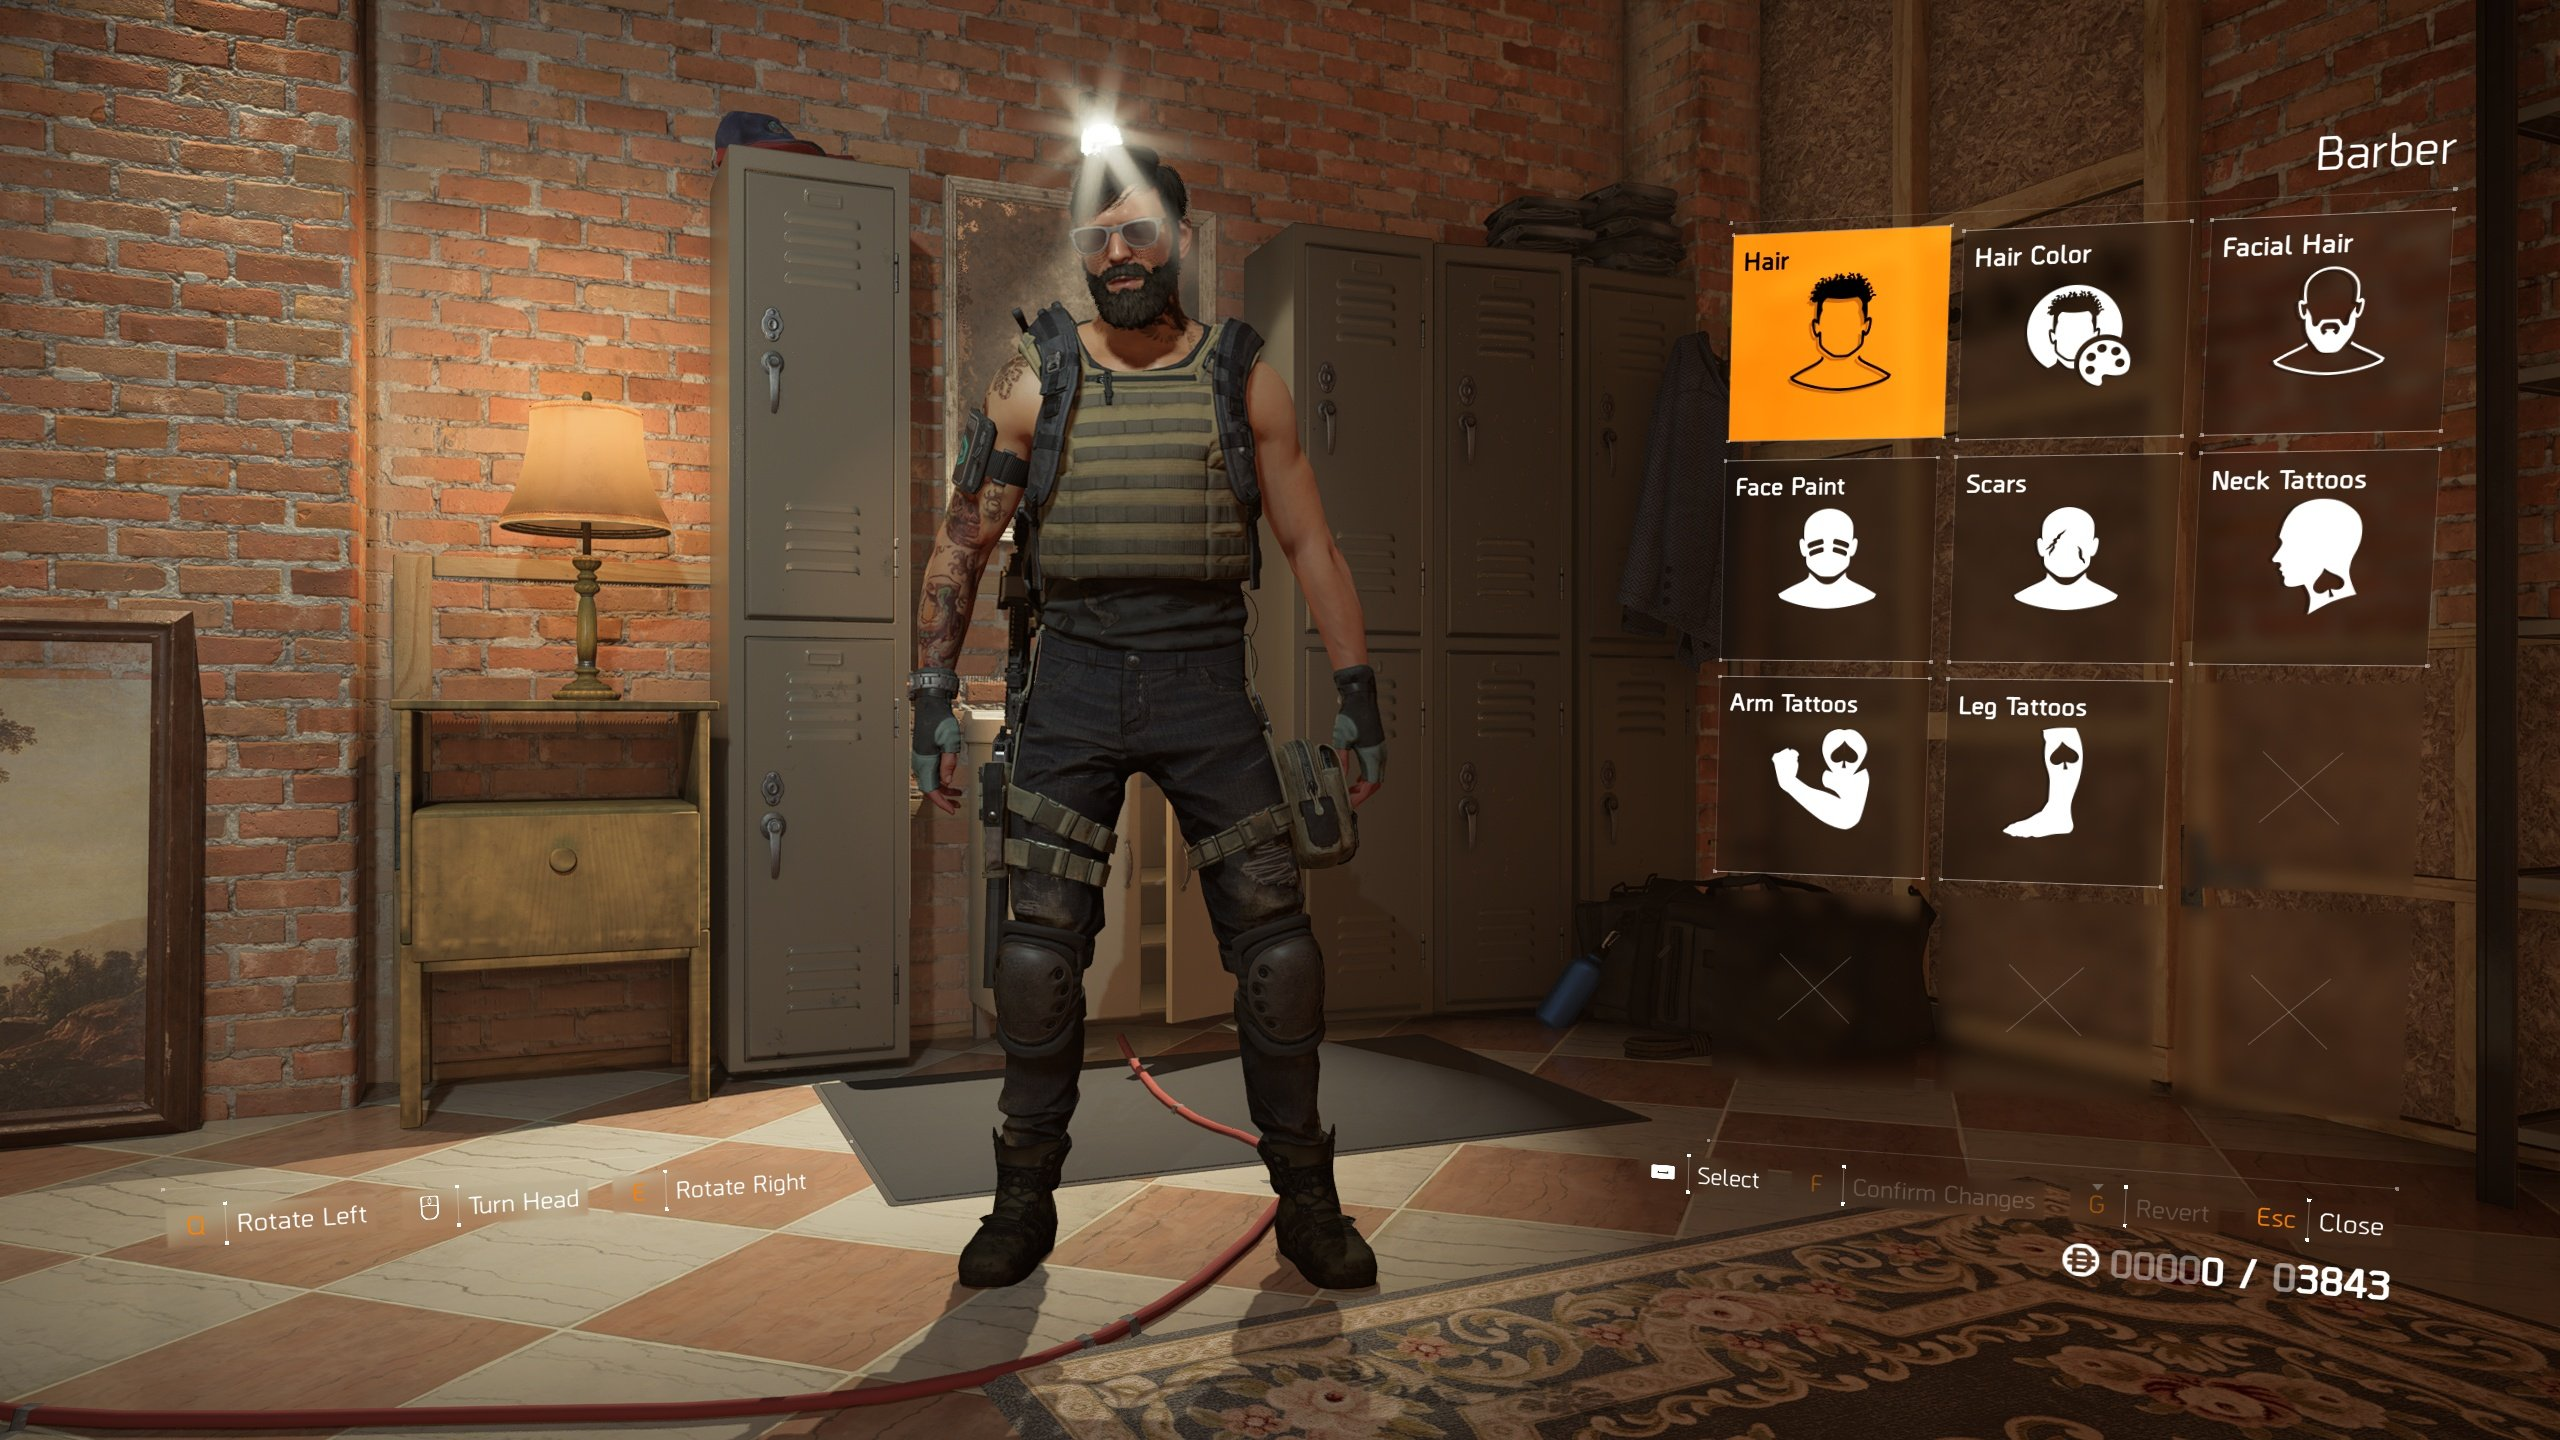 how to change appearance in The Division 2 - barber options